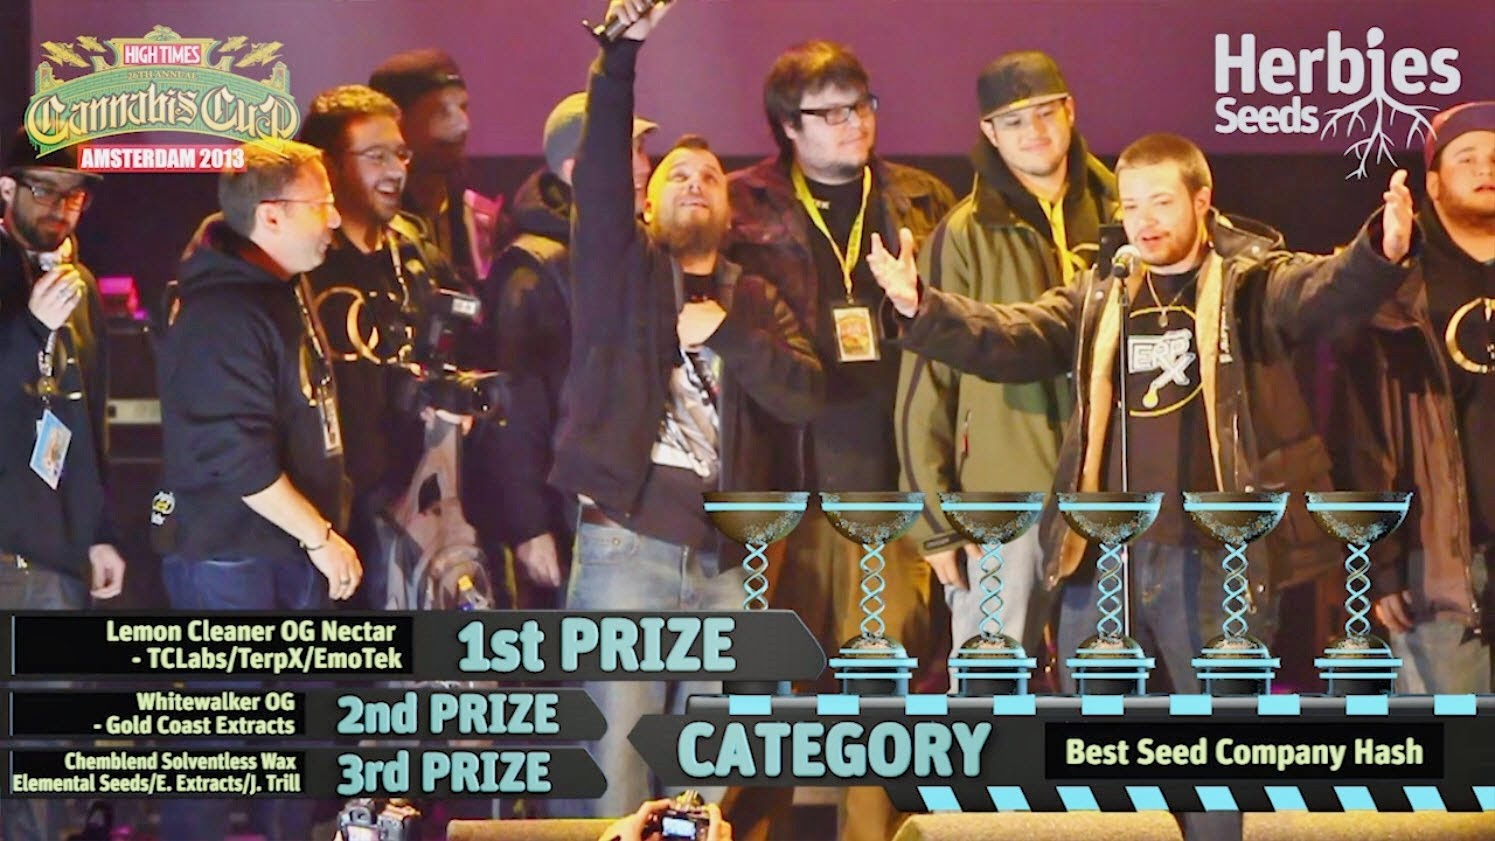 Amsterdam Cannabis Cup Winners 2013 * Awards Ceremony *